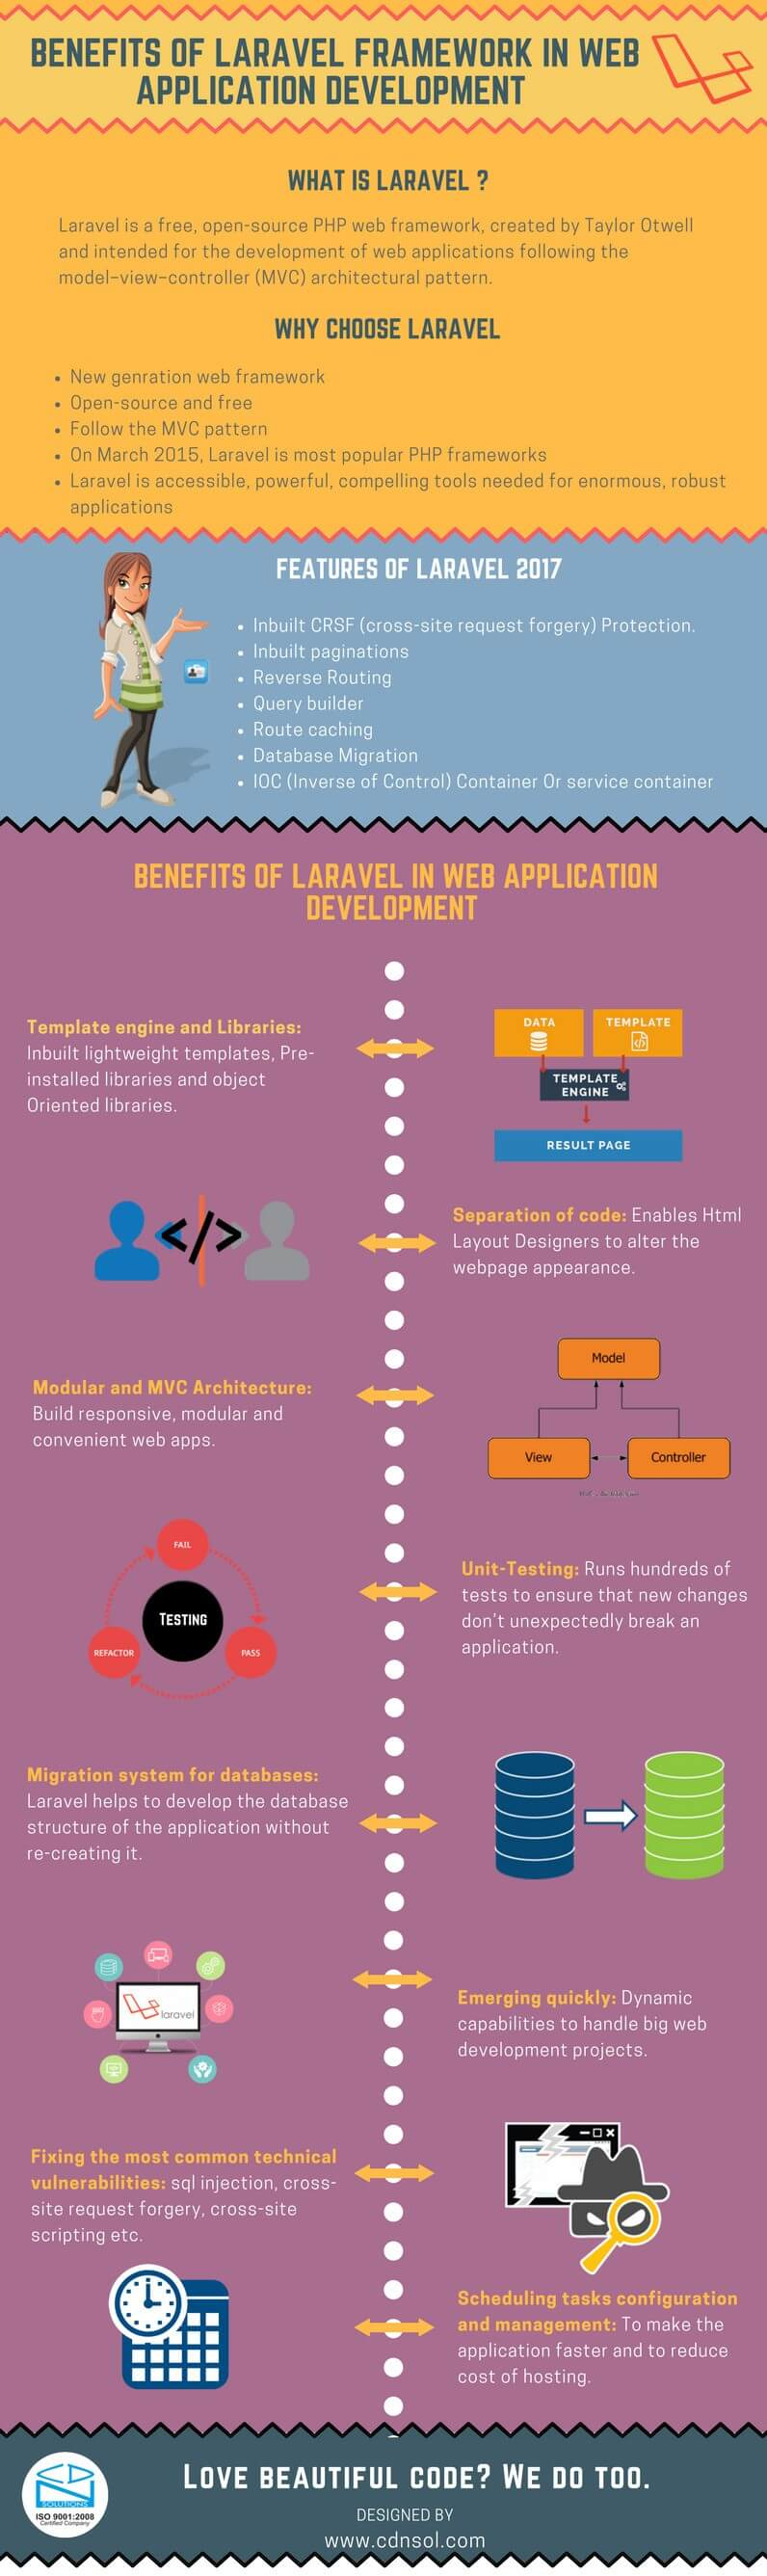 Benefits of Laravel Framework in Web Application Development Infographic 2017